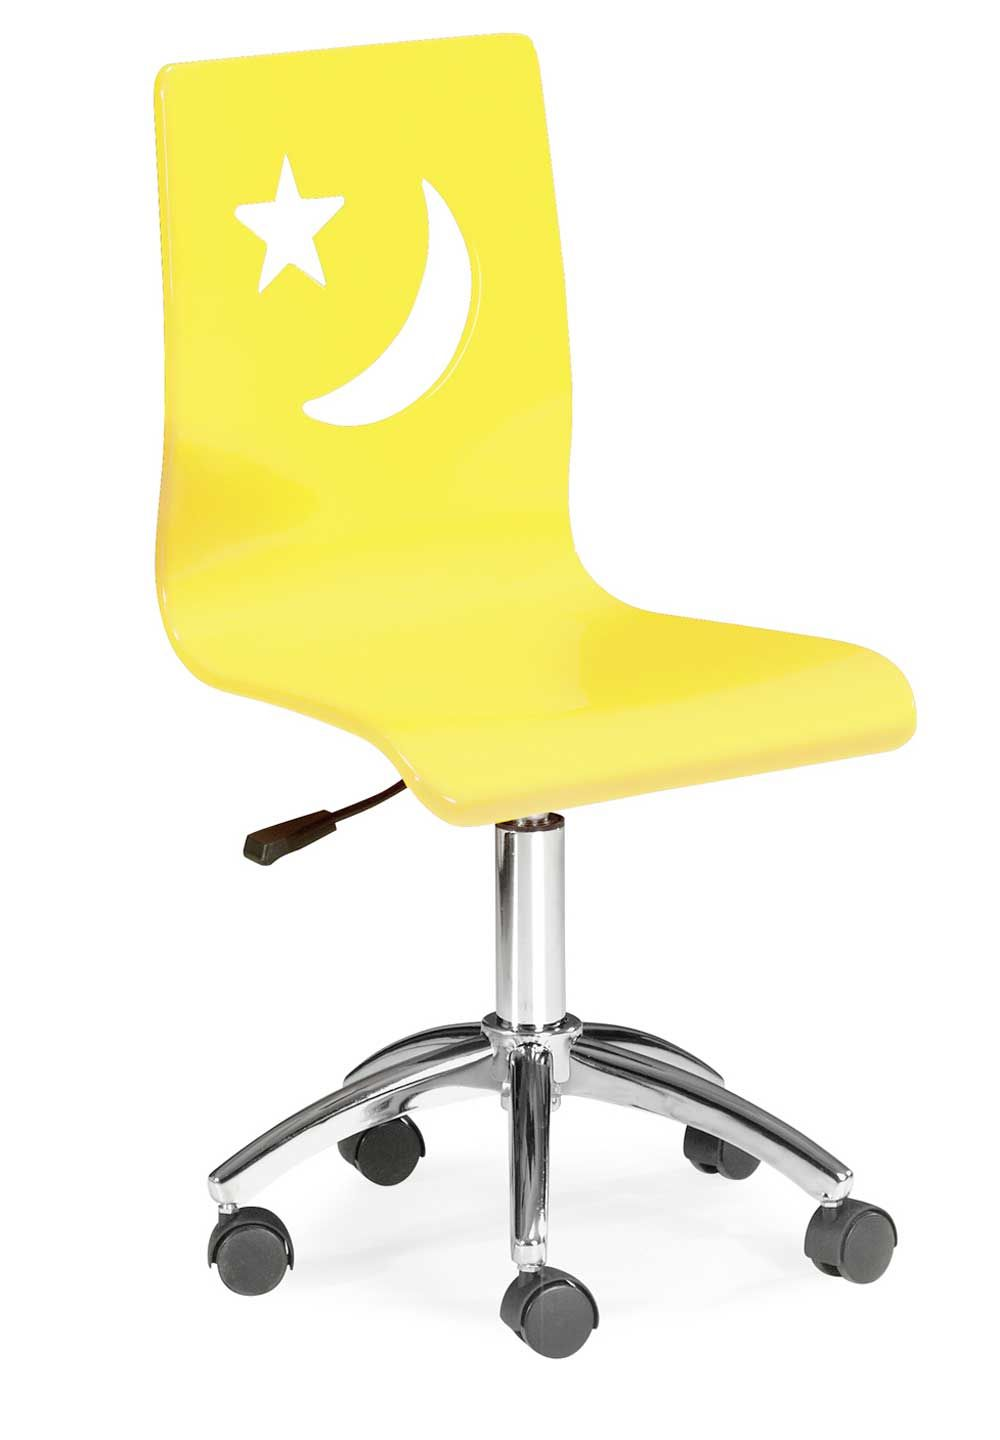 kids office chairs big lawn chair adjustable height yellow desk